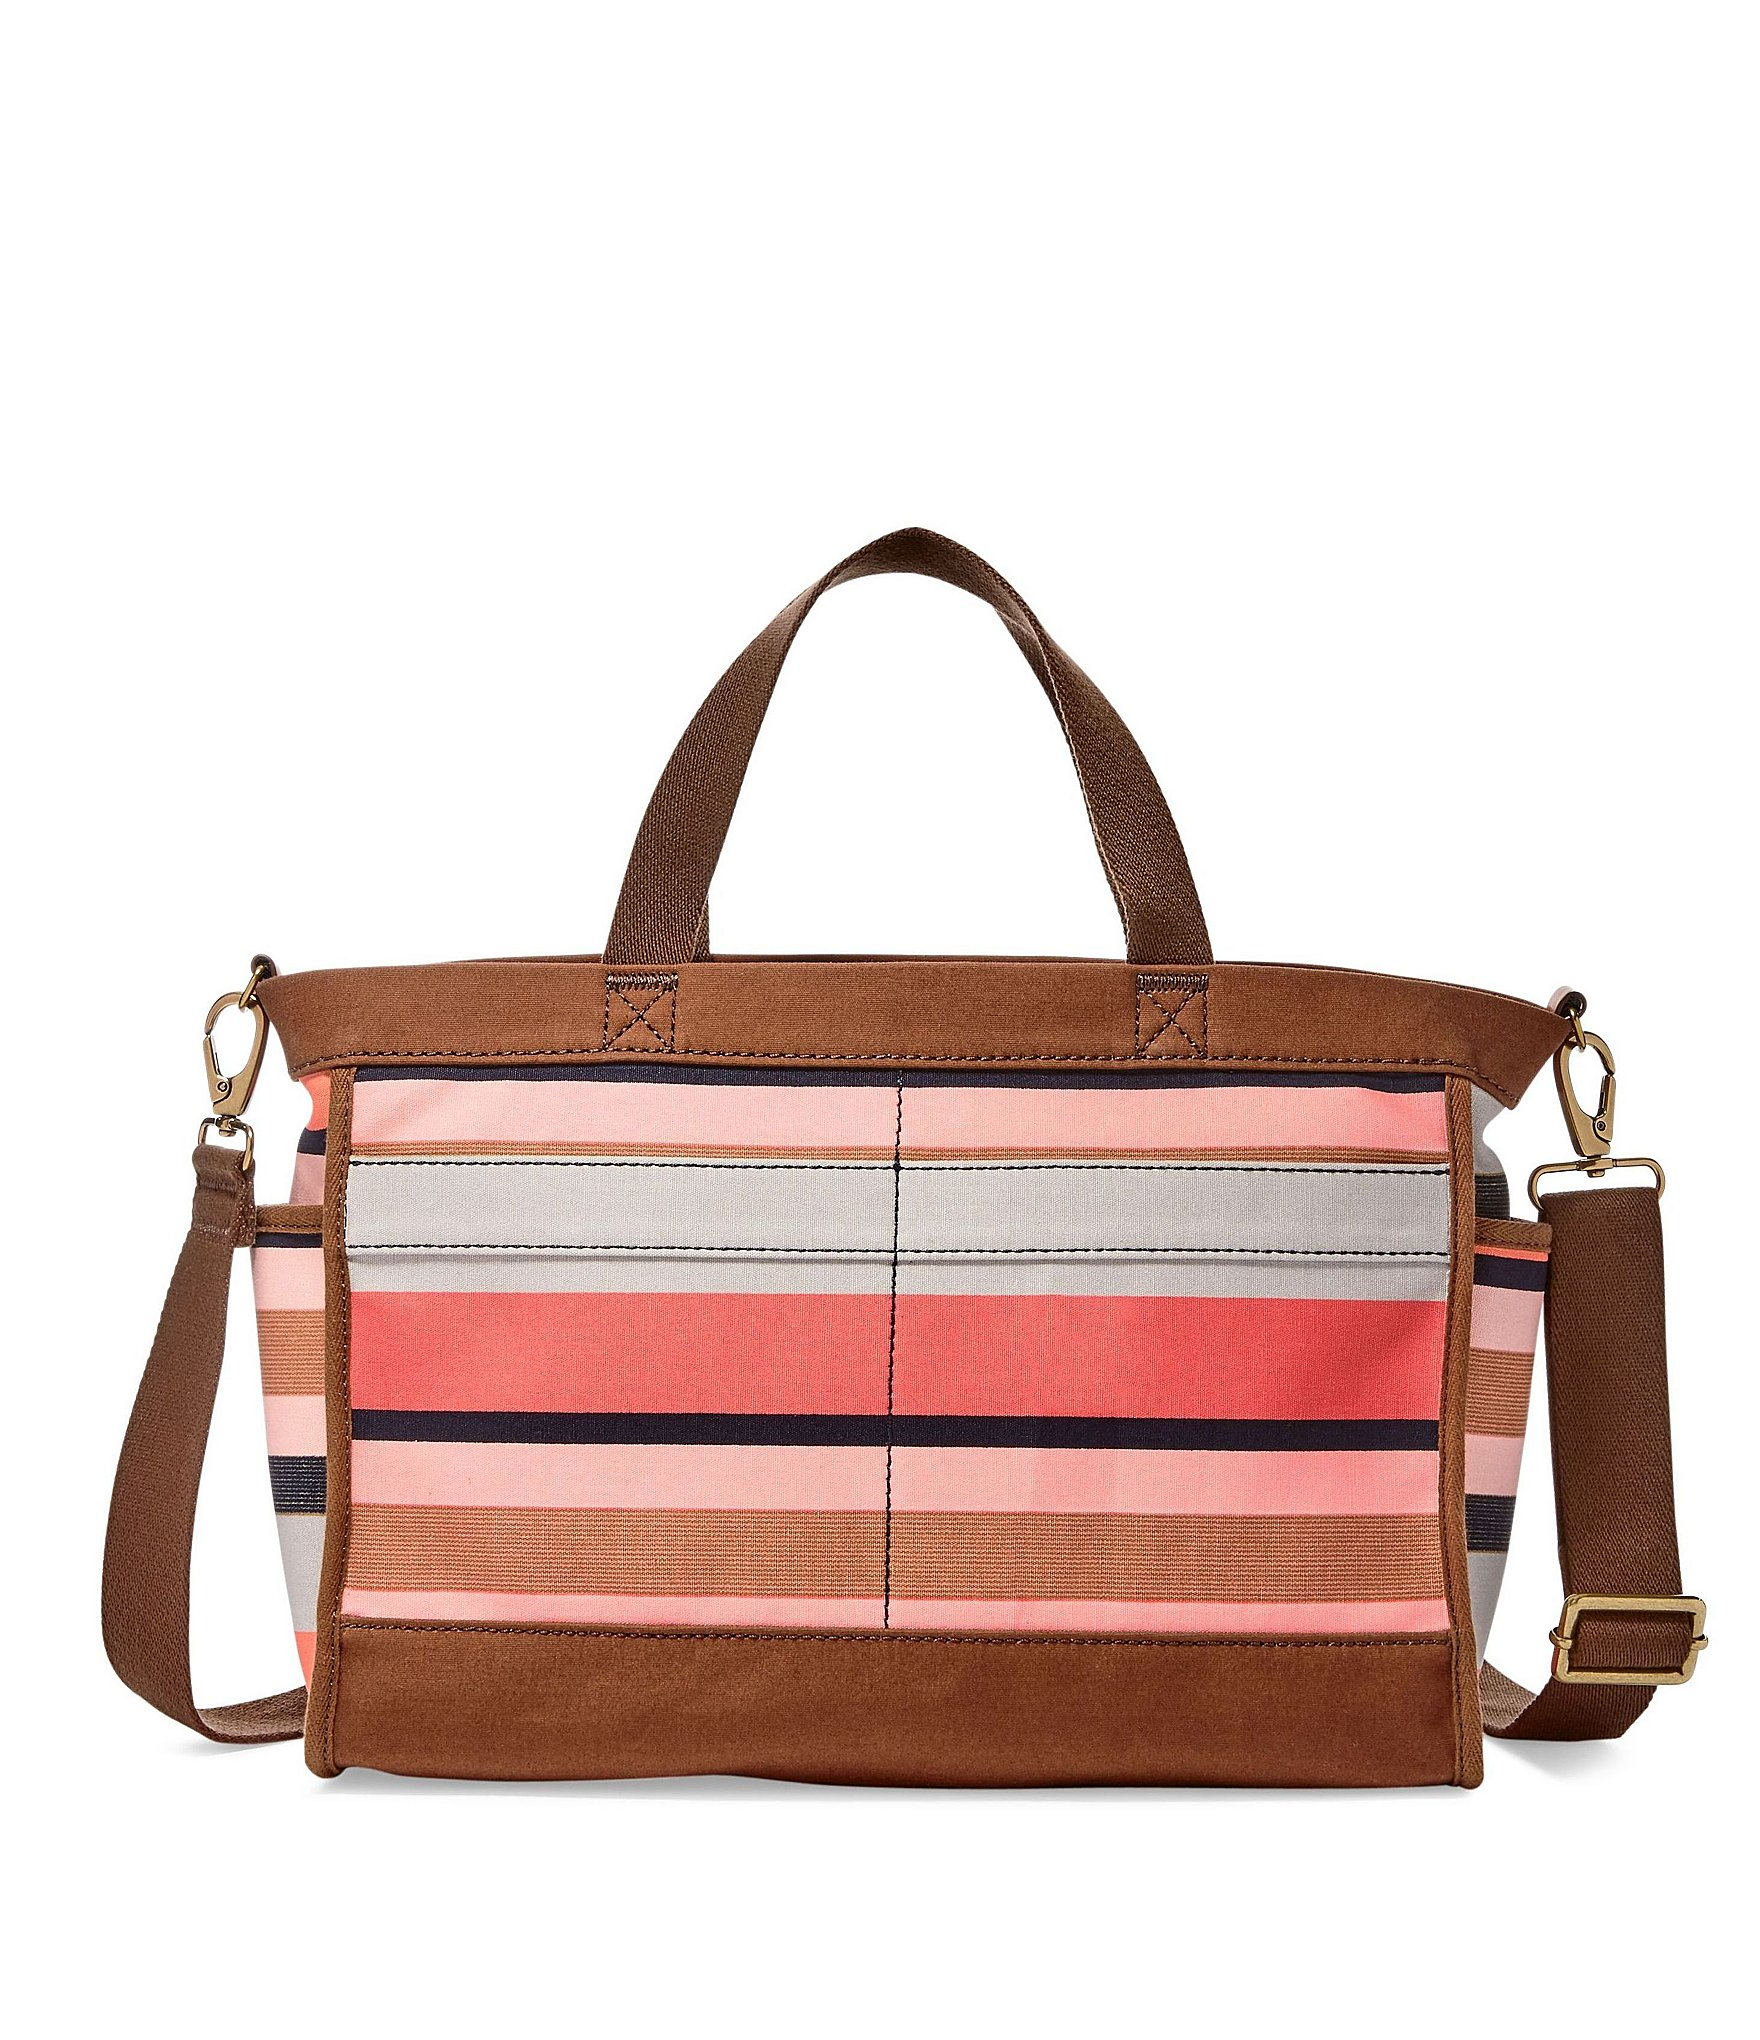 Fossil Passport East West Satchel Blue Floral Zb 6762452 Daftar Keely Tote Red Multi 6934995 Lyst Dotted Source Gallery